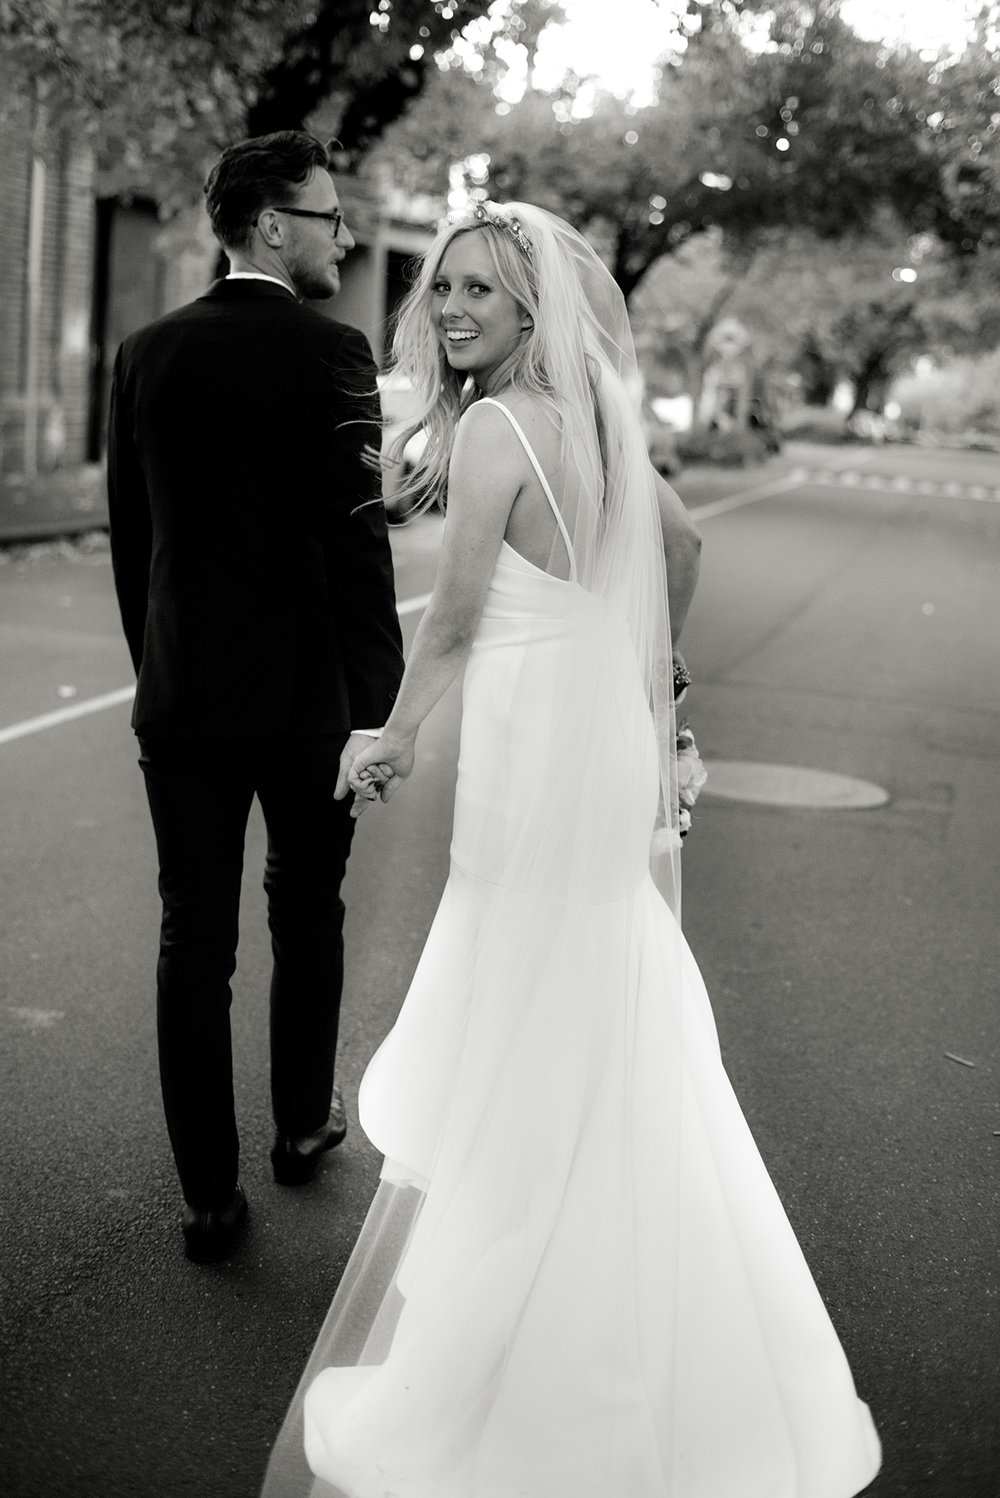 I-Got-You-Babe-Weddings-and-Co.-Melbourne-Wedding-Photographers0004.JPG